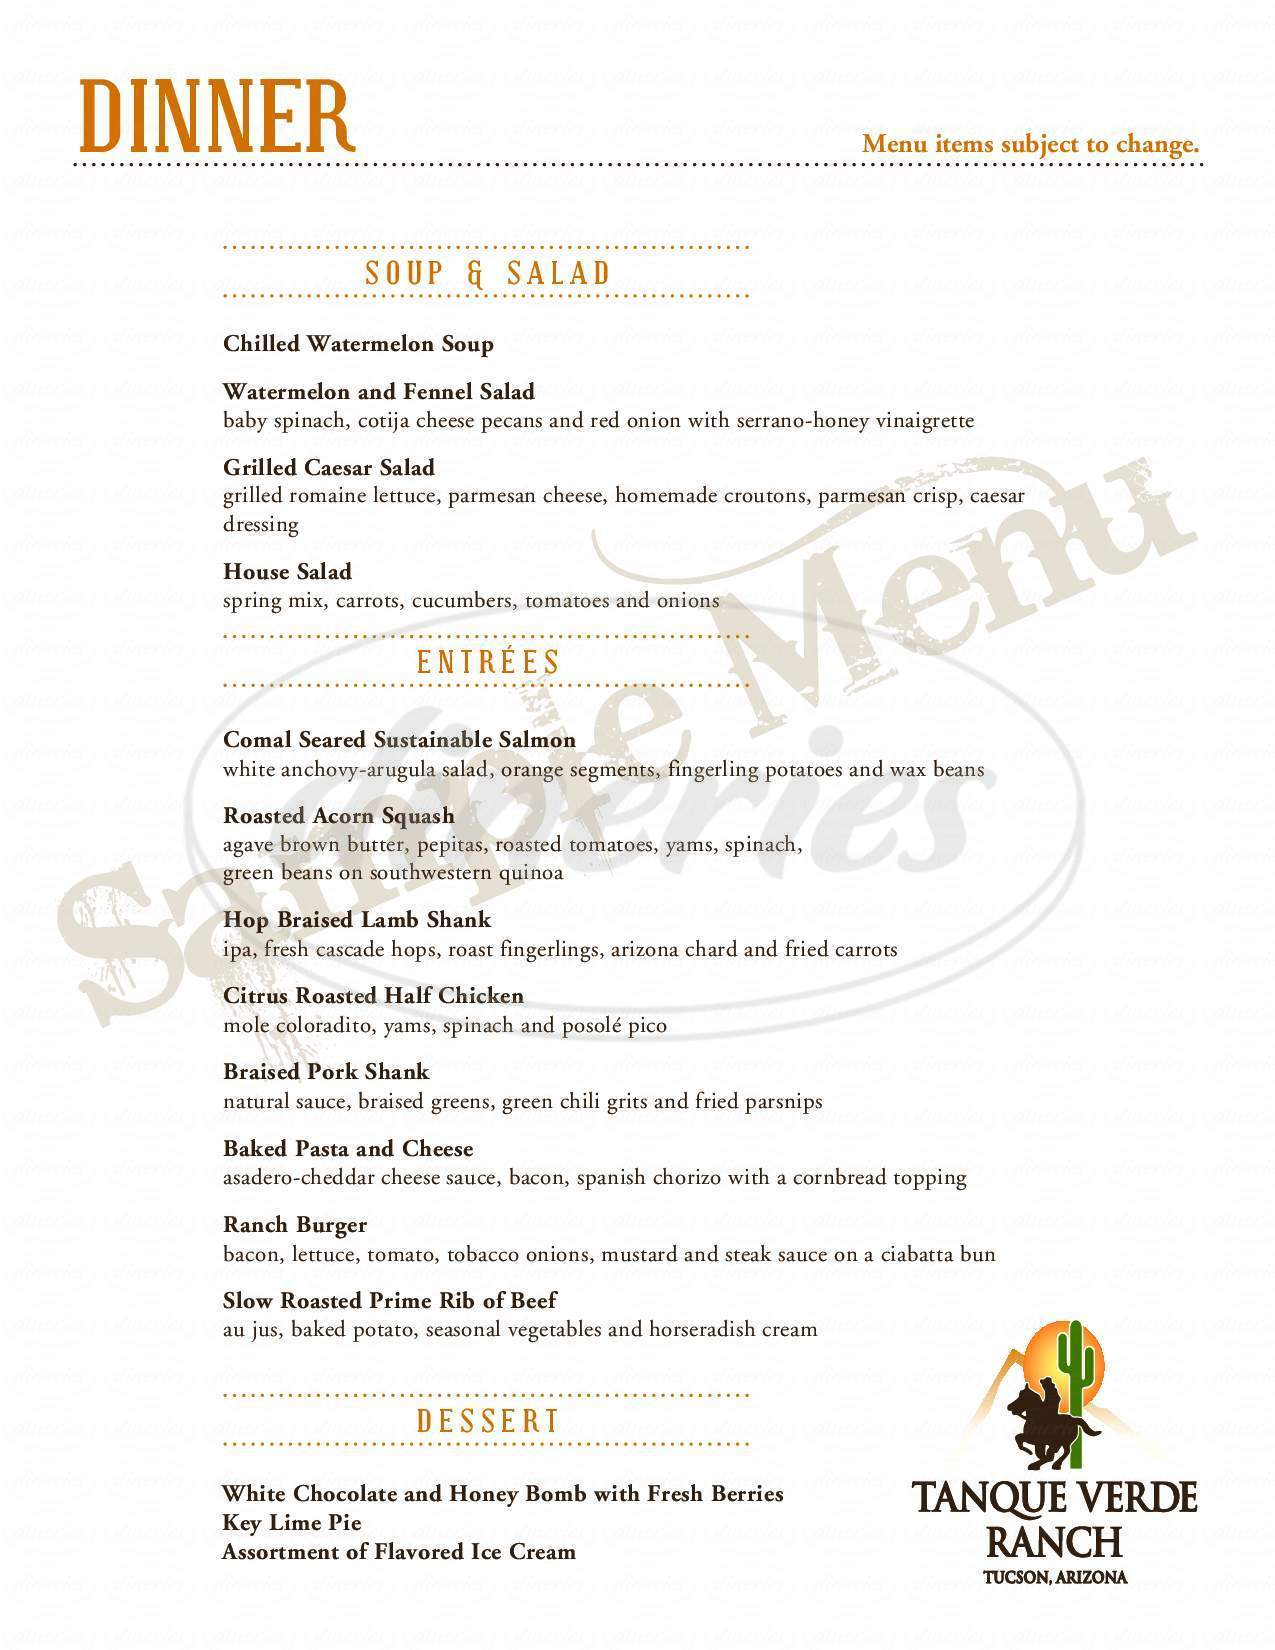 menu for Tanque Verde Guest Ranch